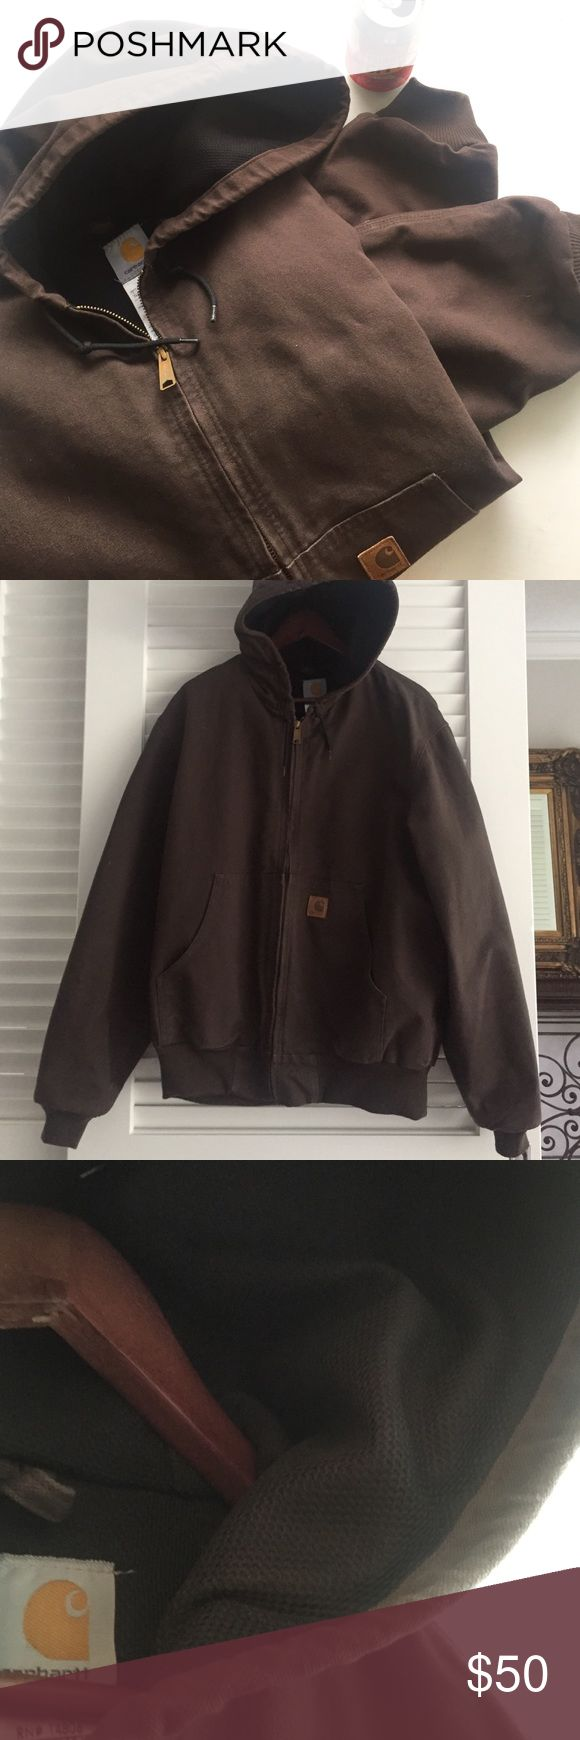 Carhartt Active Jacket Thick canvas material // black mesh lining throughout interior for breathable insulation // bronze zipper // EUC Carhartt Jackets & Coats